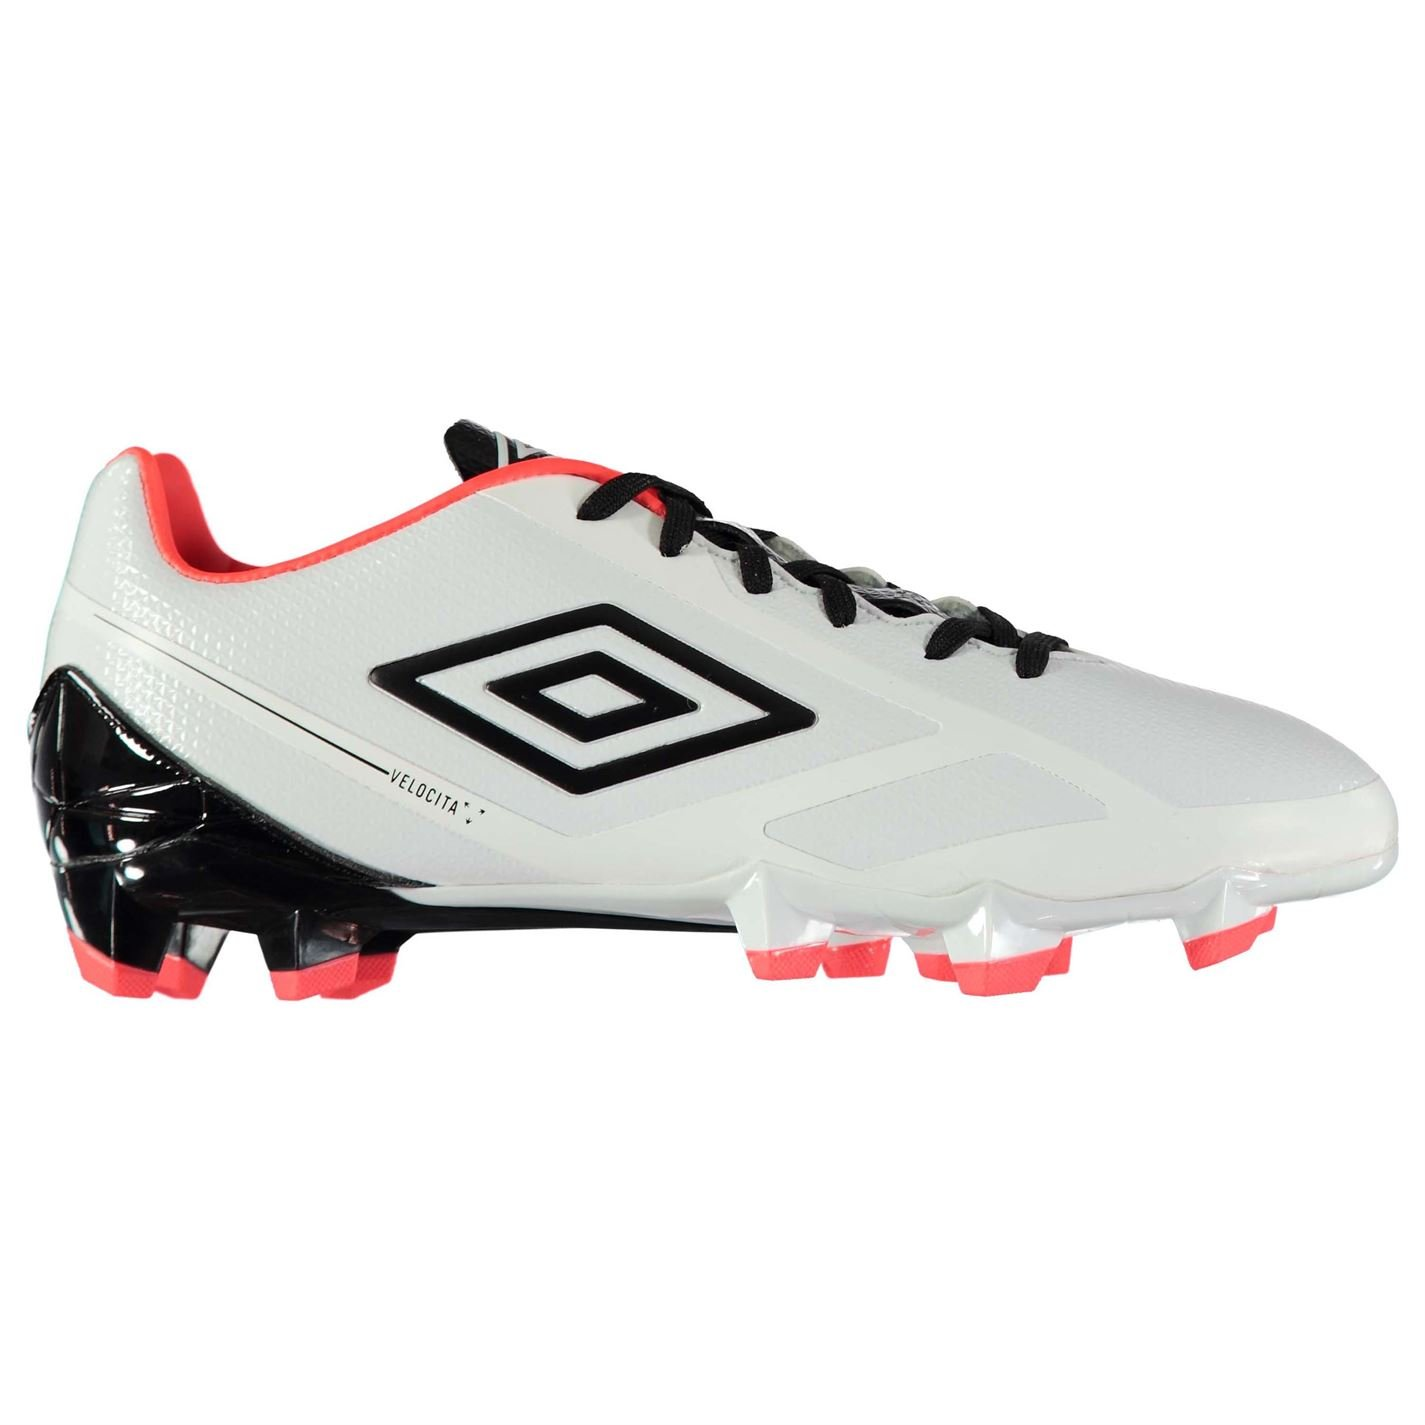 da3e0bb5caae Umbro Mens Velocita 2 Premier FG Football Boots Firm Ground Lace Up Padded  Ankle White Black Cor UK 8 (42)  Amazon.co.uk  Shoes   Bags